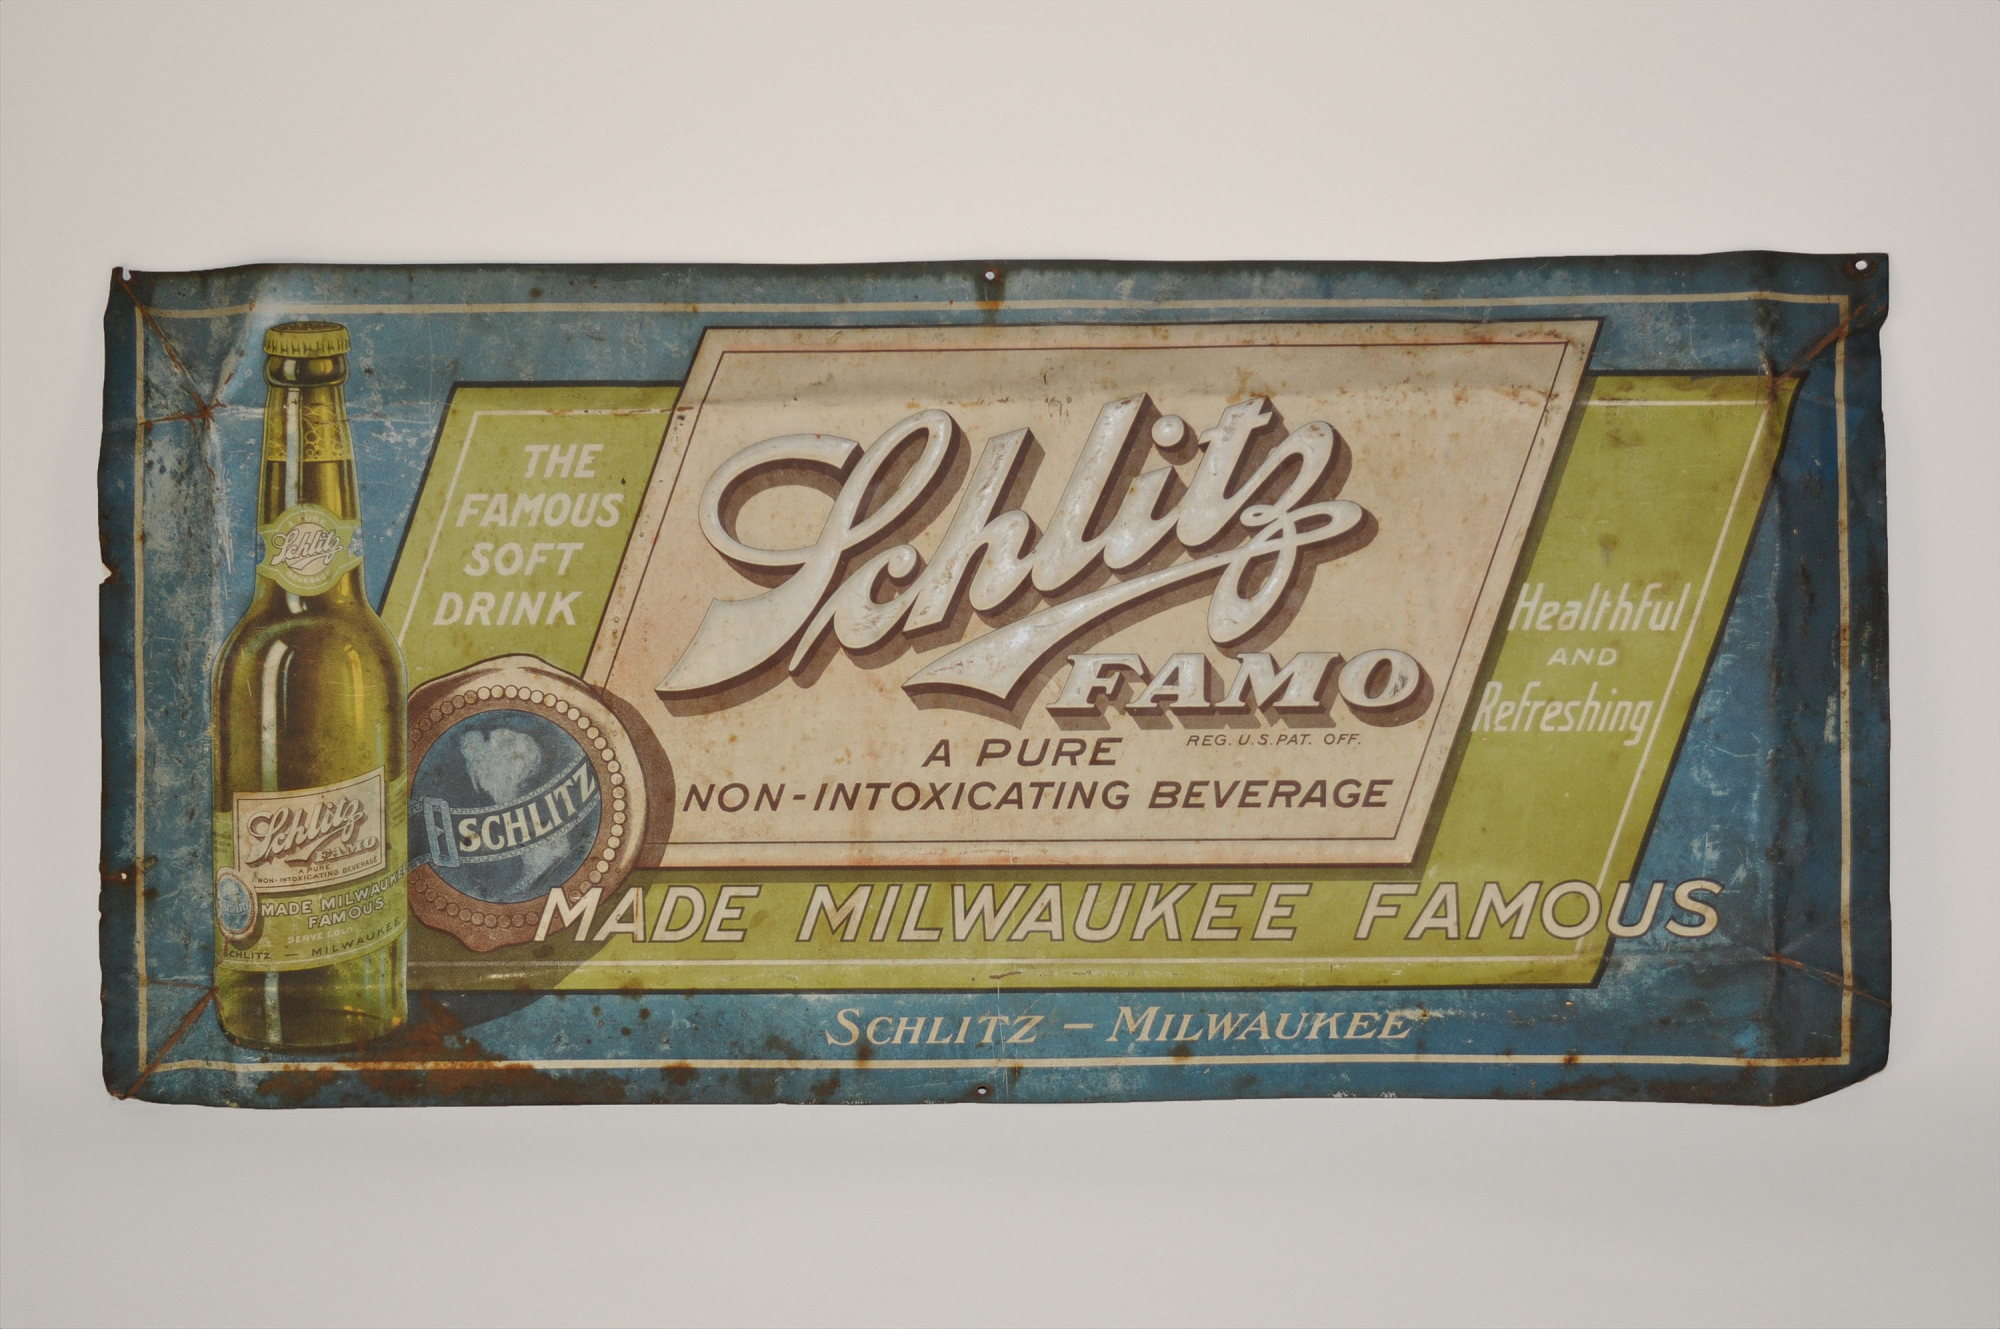 Schlitz FAMO Sign, 1920s (image courtesy of the Smithsonian)